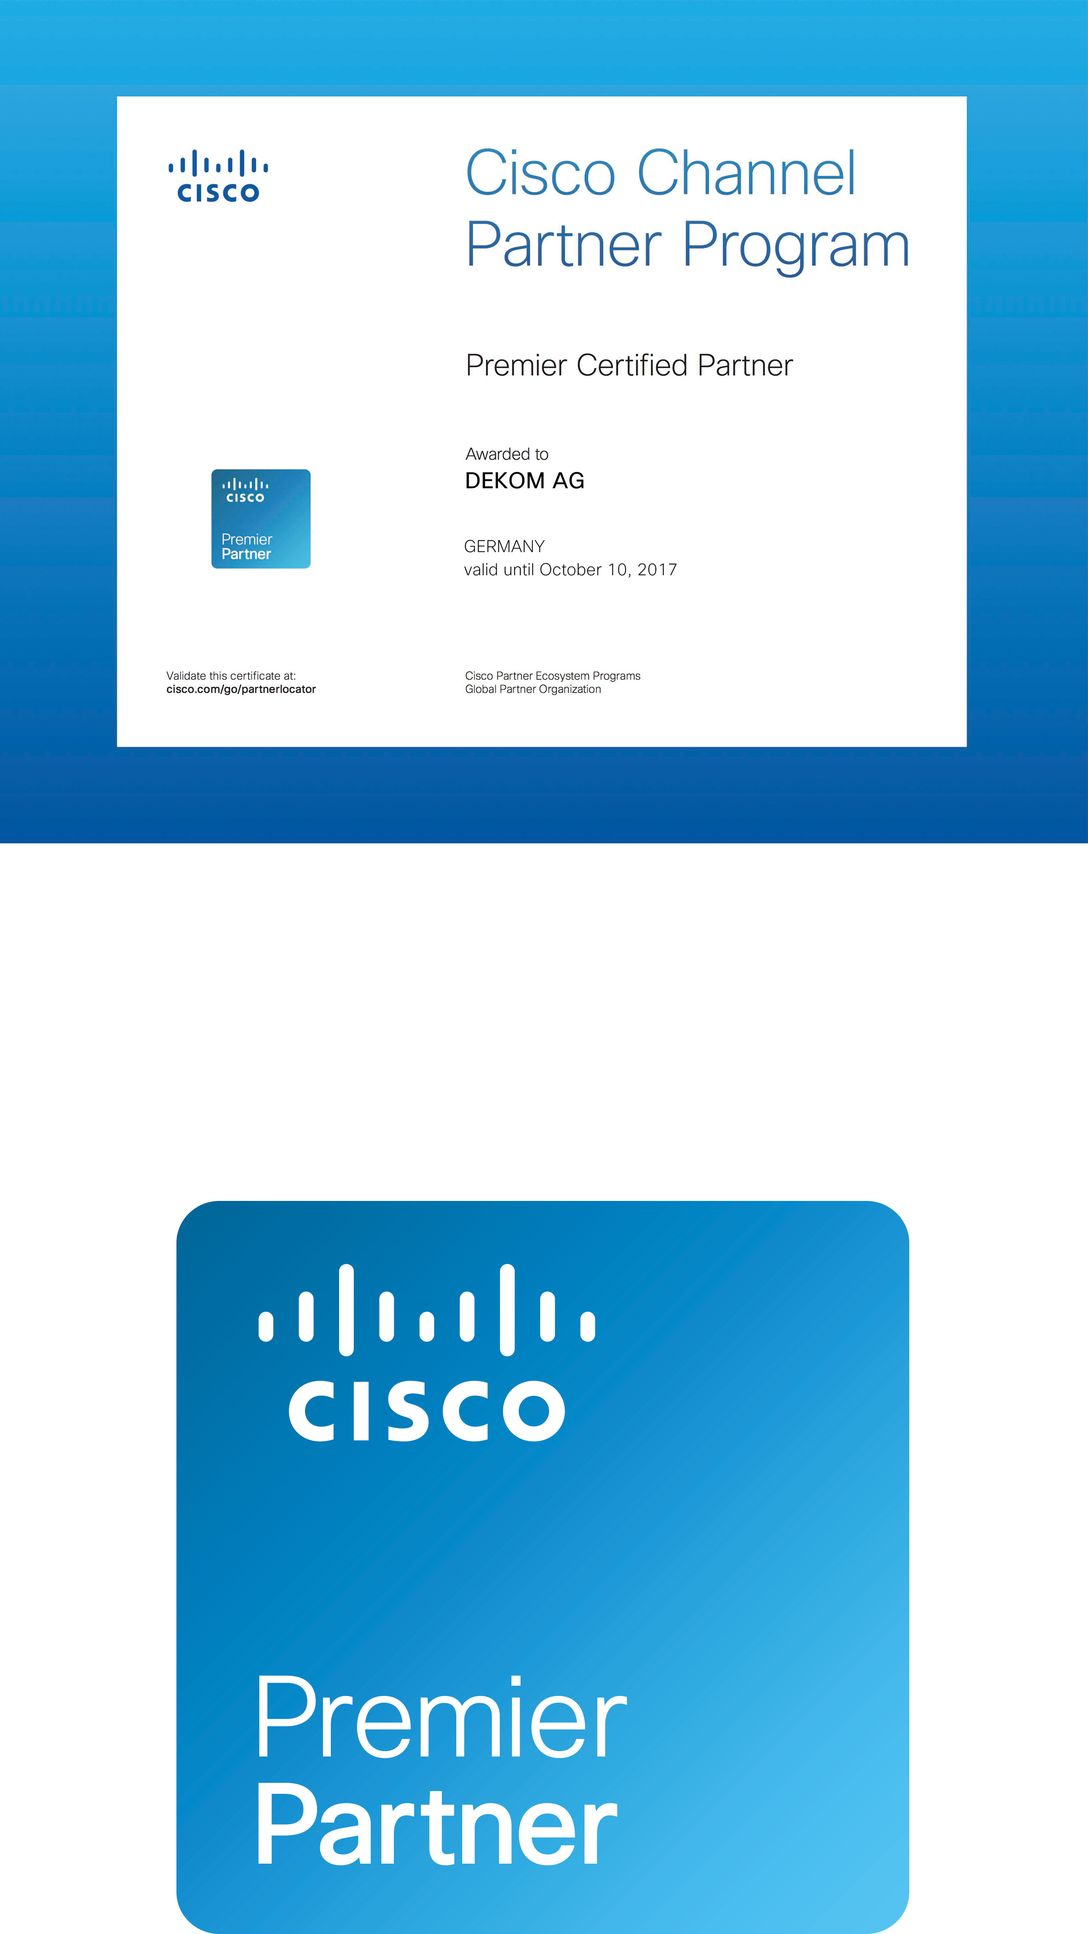 DEKOM receives Premier Partner Certification From Cisco In Germany ...